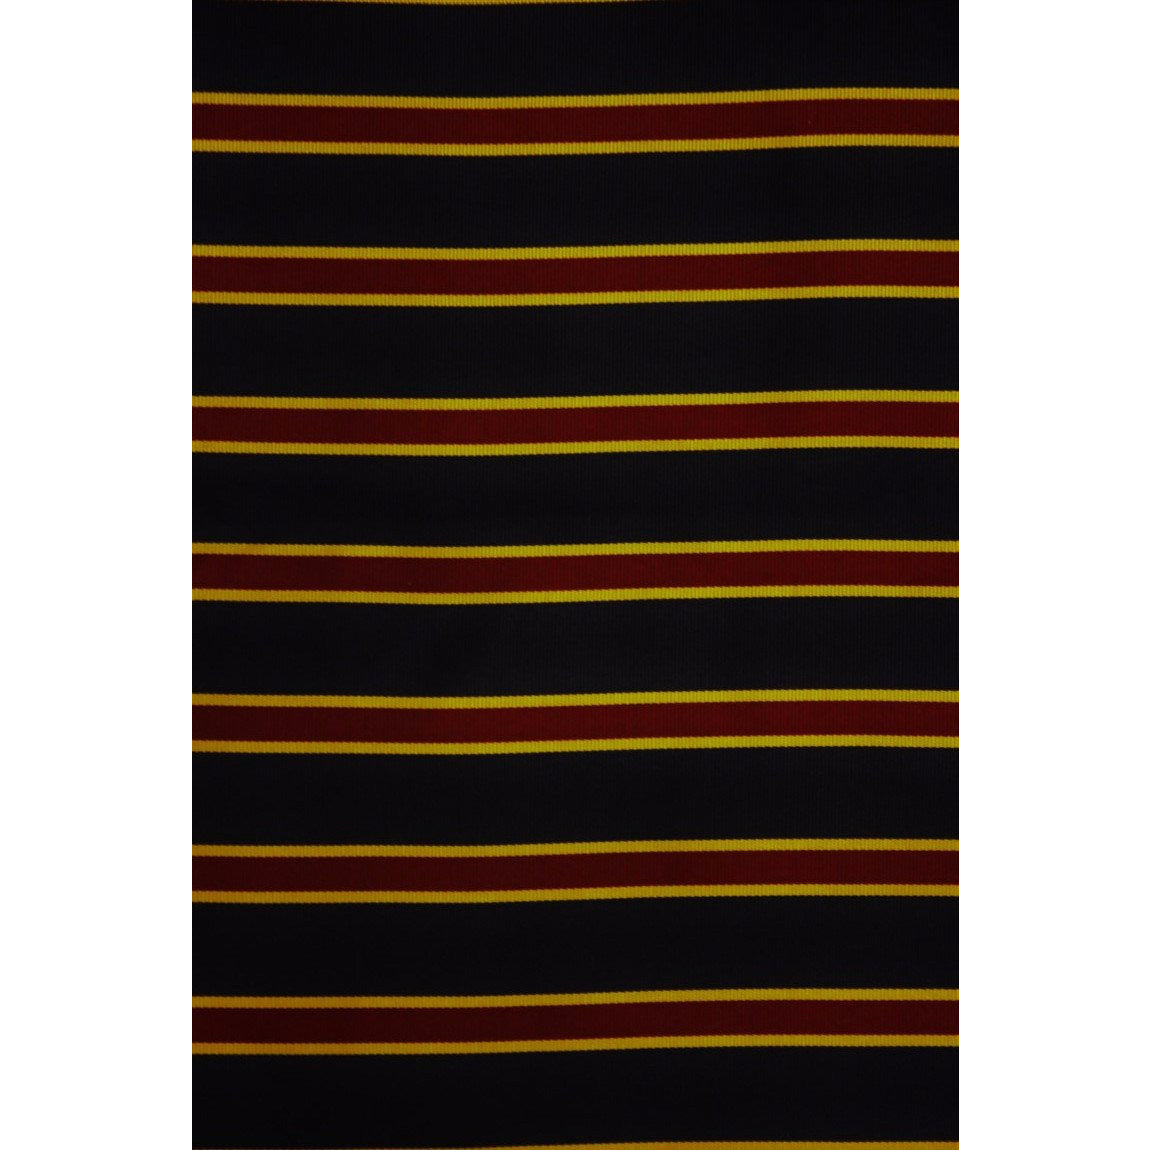 Brooks Brothers English Silk Neckwear Fabric w/ Navy, Gold & Maroon Regimental Stripes